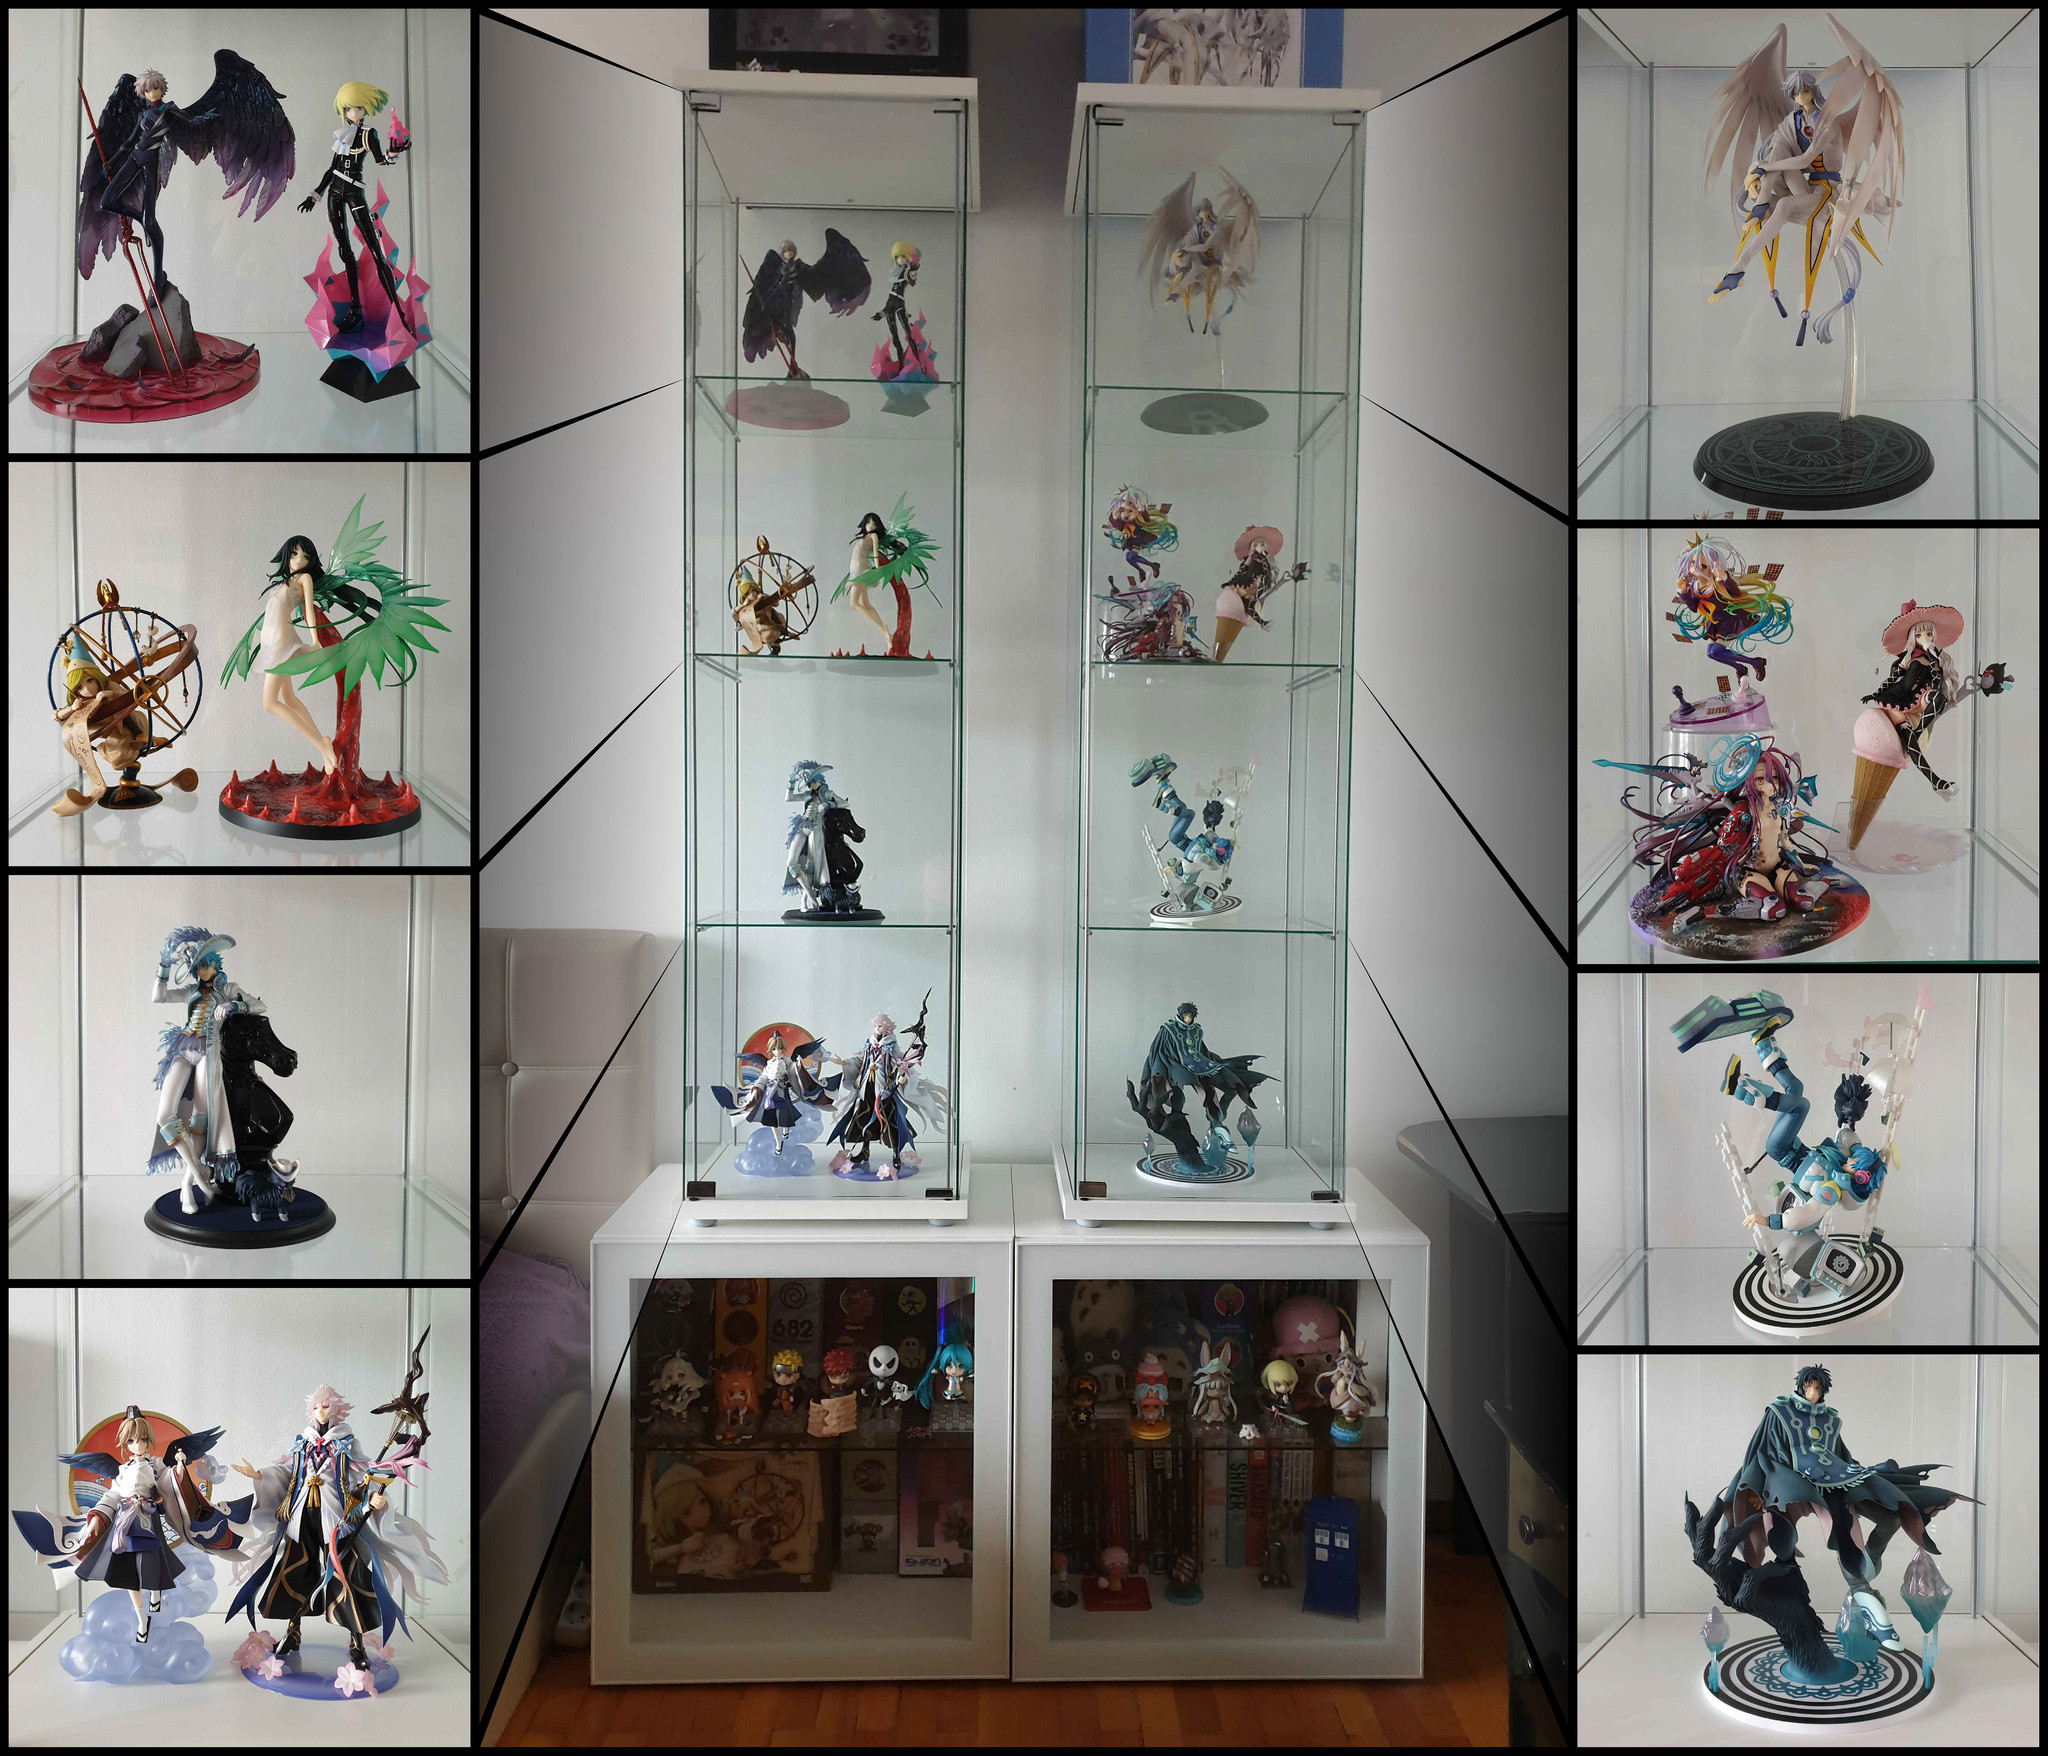 https://static.myfigurecollection.net/upload/pictures/2020/12/31/2595699.jpeg